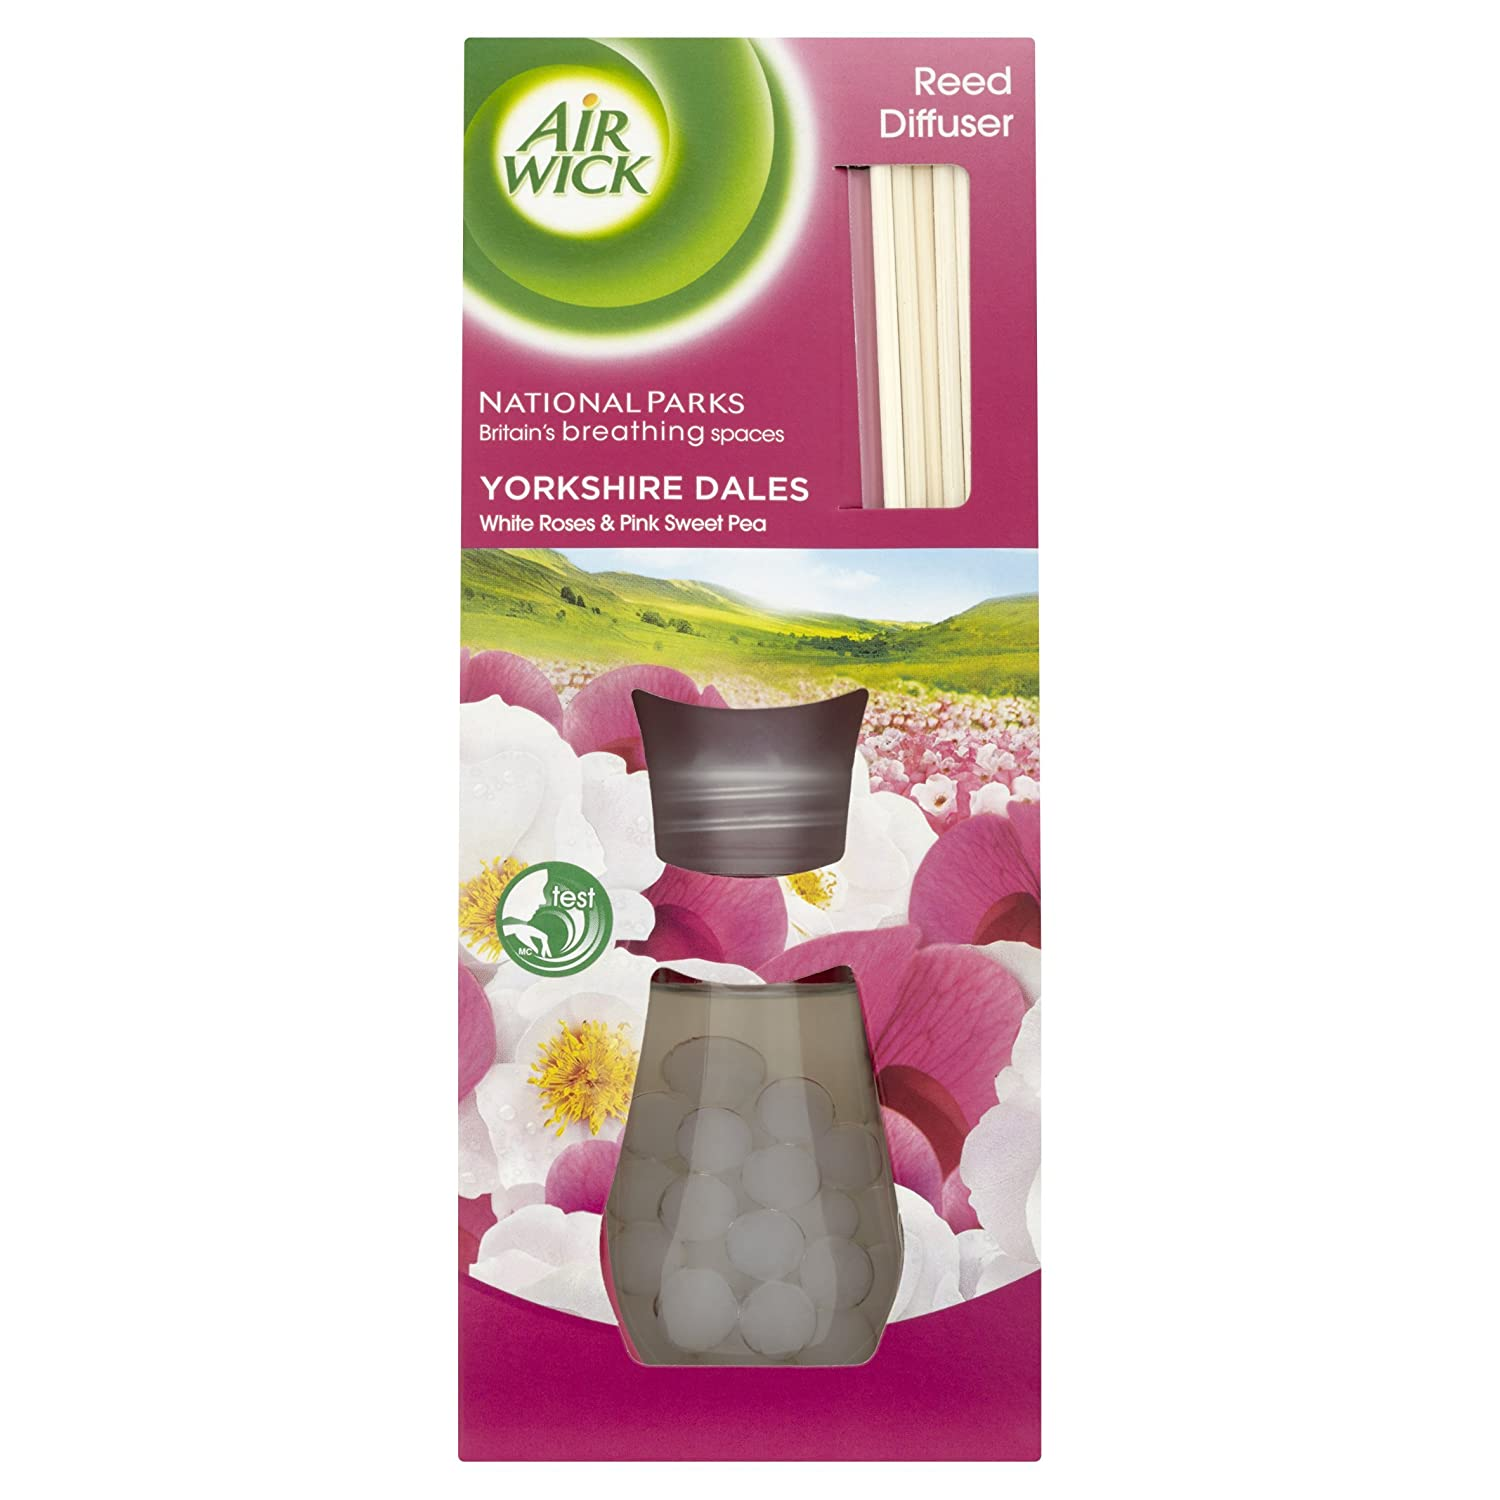 Air Wick Air Freshener, Reed Diffuser, White Vanilla Bean, 25 ml, Single Airwick